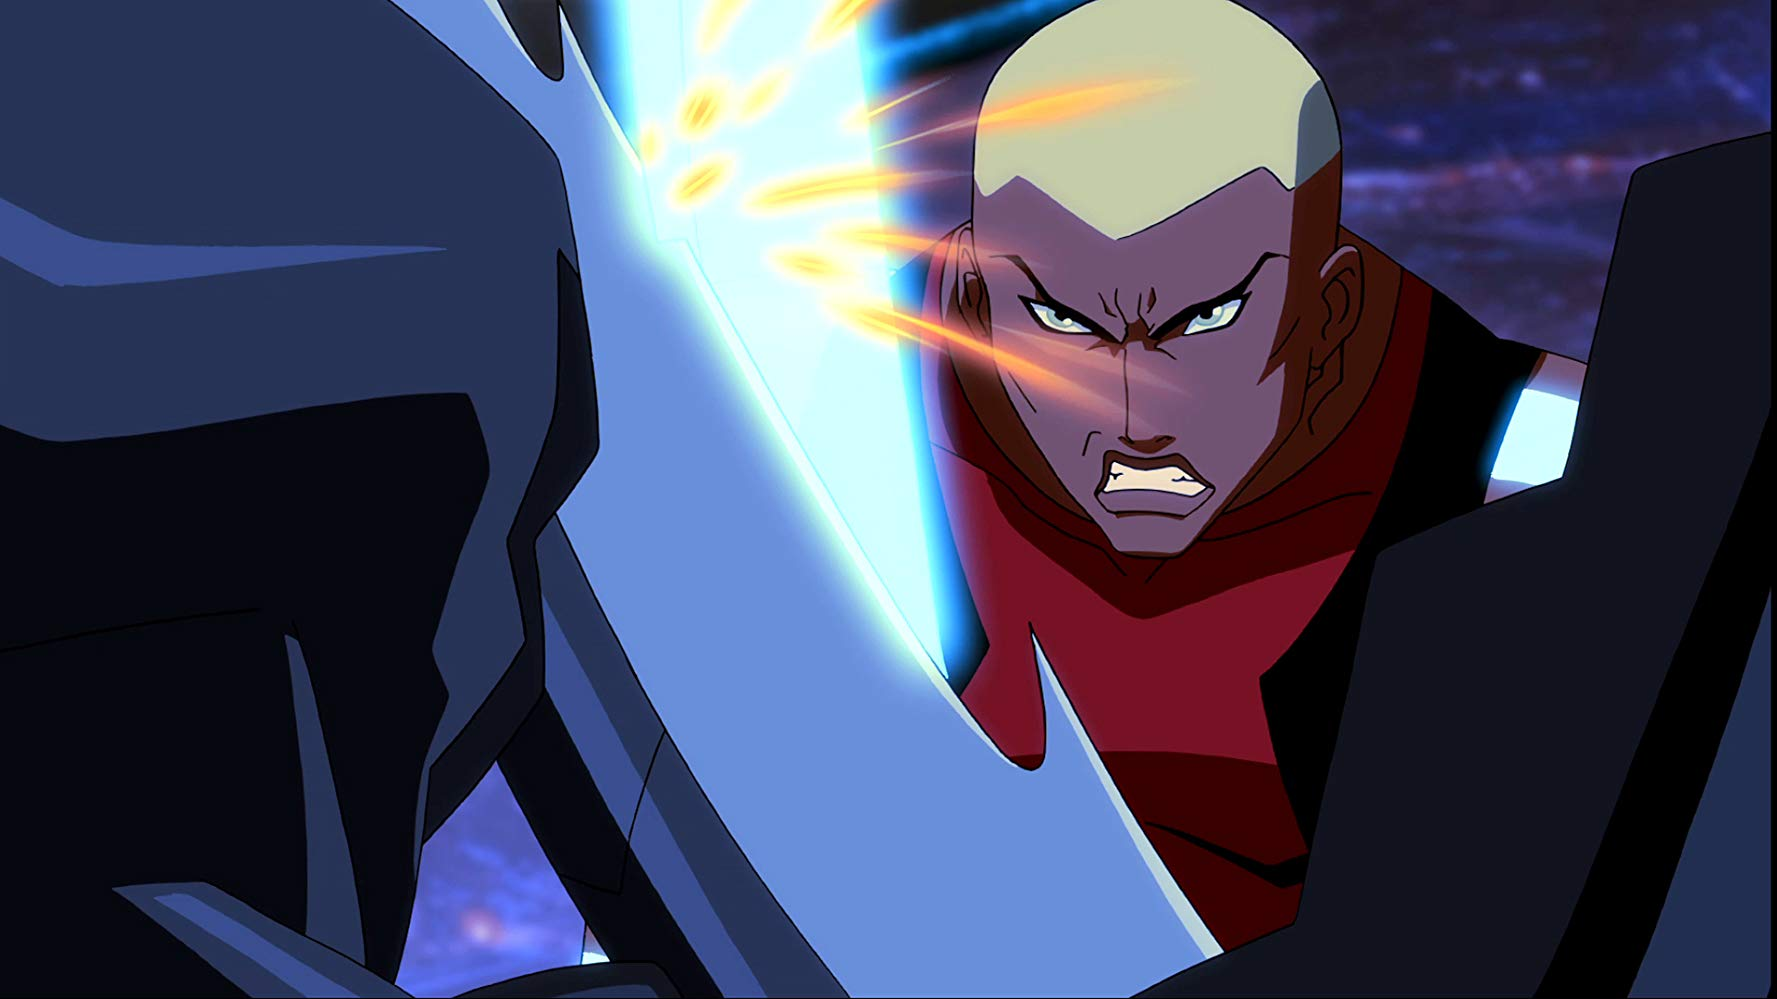 Kevin Grevioux (Black Beetle) and Khary Payton (Aqualad) in Young Justice. Source: IMDB